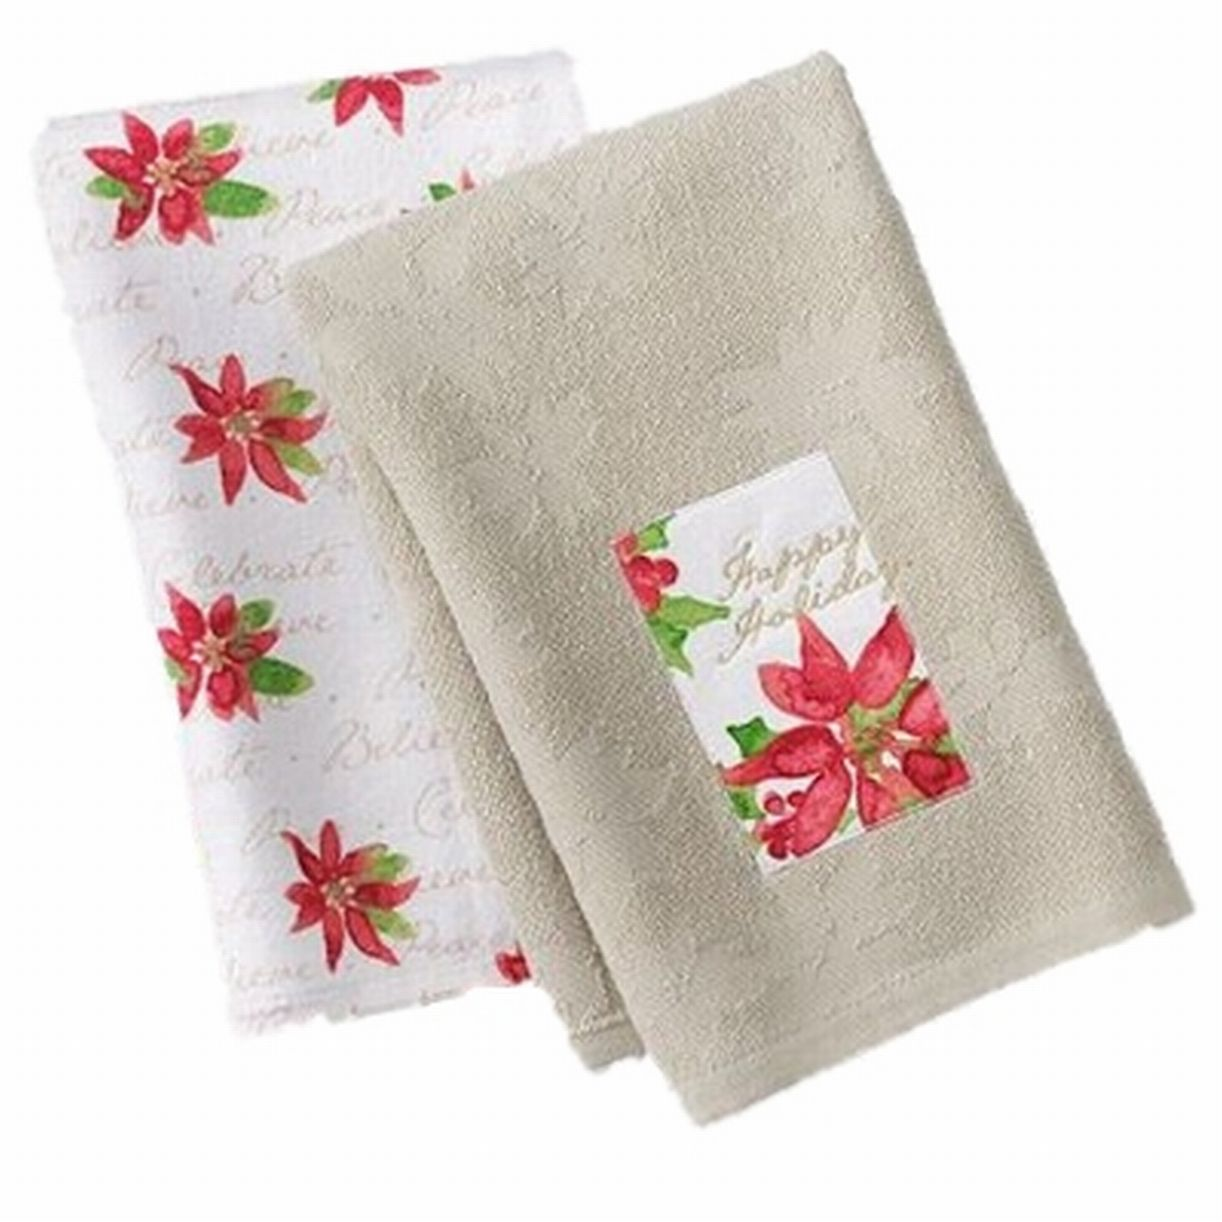 St Nicholas Square Christmas Poinsettia Kitchen Towel Set Happy Holidays